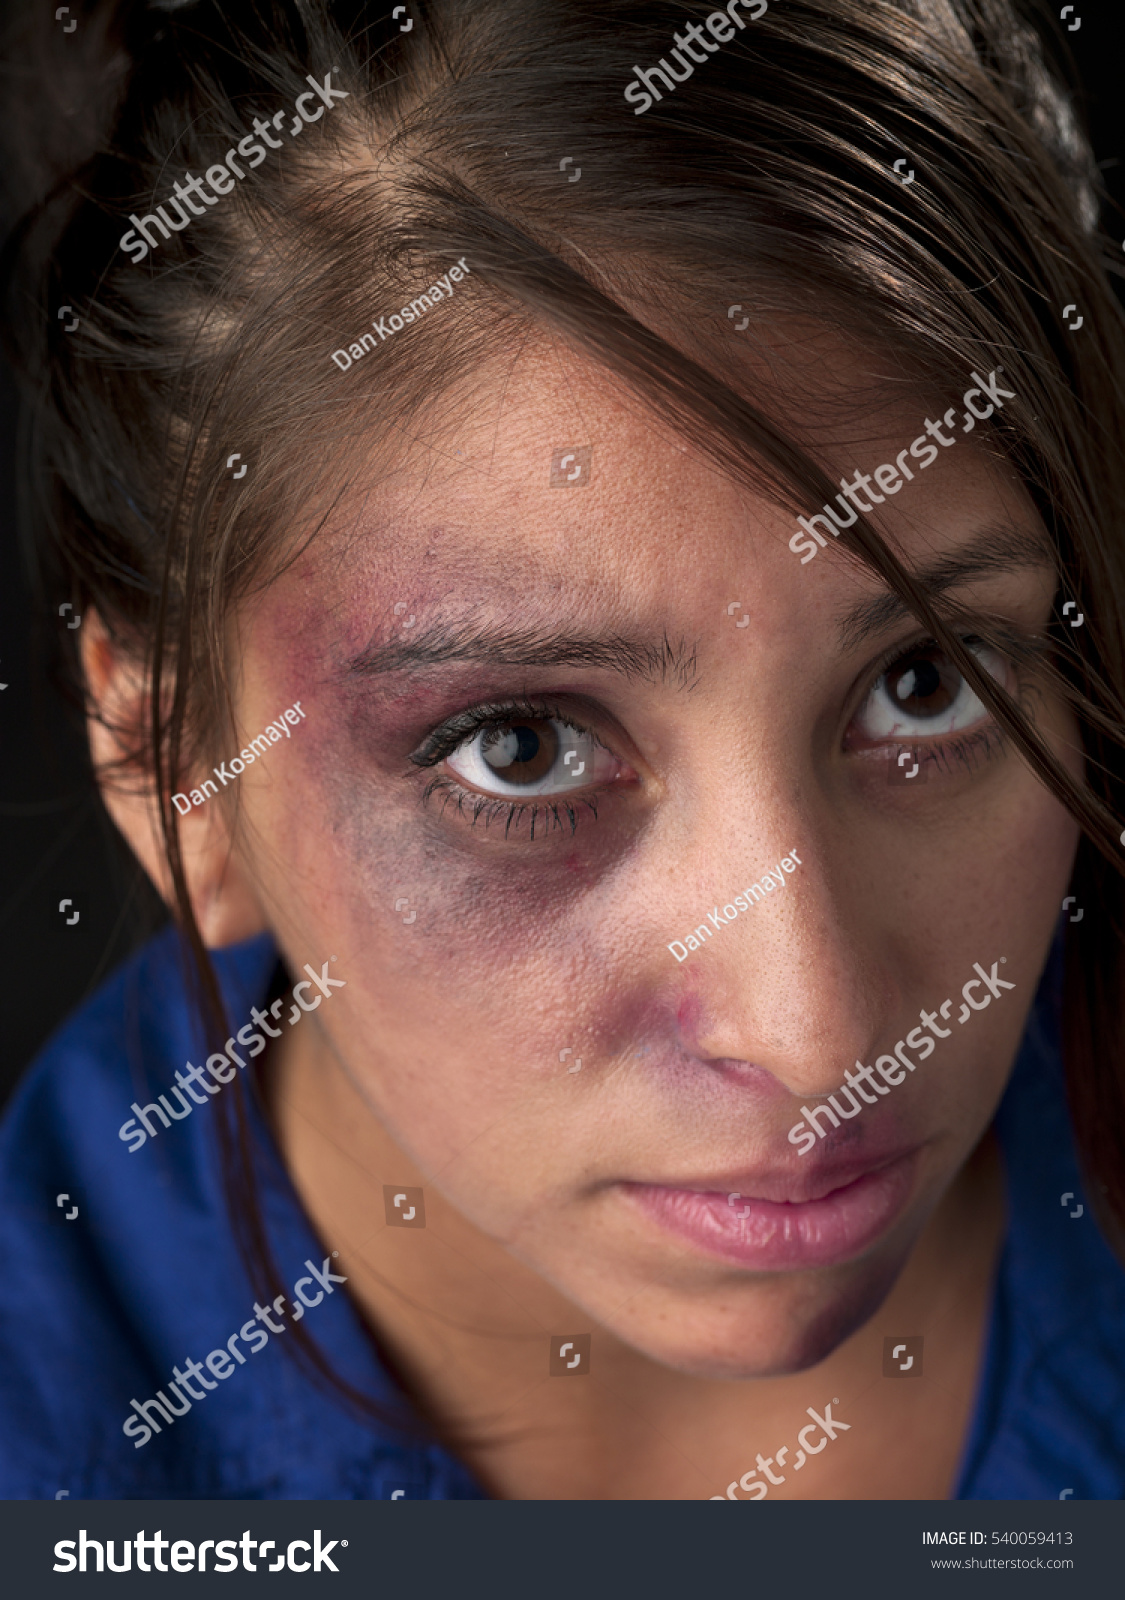 woman body facial injuries which can stock photo 540059413